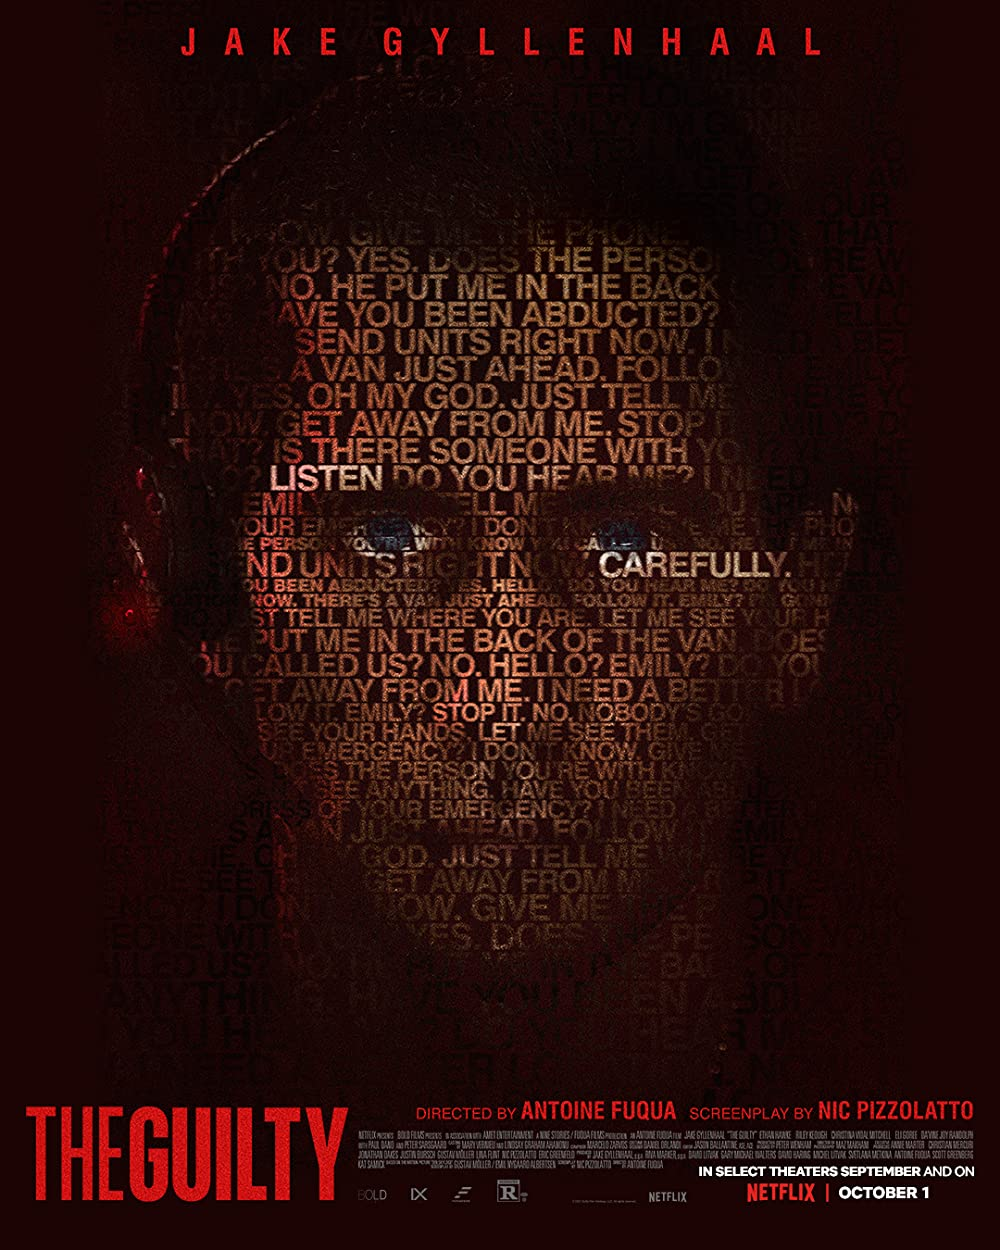 The Guilty 2021 English Movie 1080p HDRip 1.41GB Download